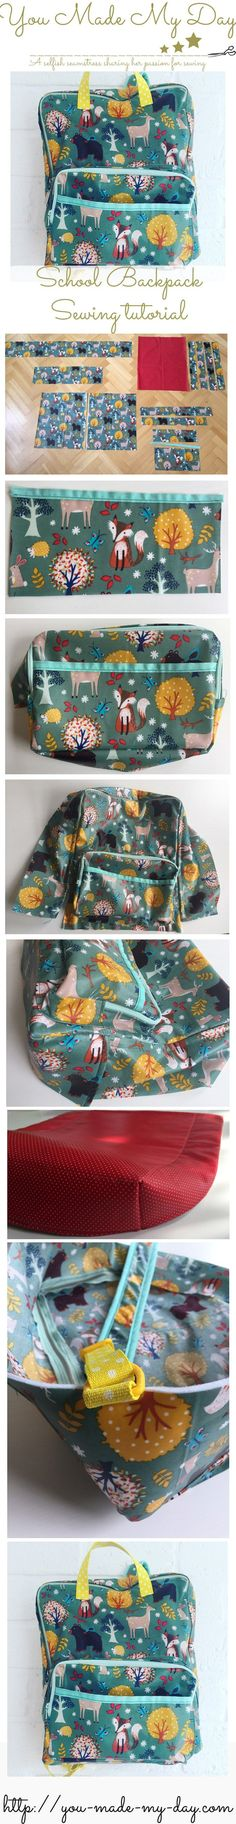 free backpack sewing tutorial and templates! made accessories sewing DIY Backpack – sewing tutorial & pattern Sewing Blogs, Easy Sewing Projects, Sewing Projects For Beginners, Sewing Hacks, Sewing Tutorials, Sewing Crafts, Sewing Tips, Bag Tutorials, Tutorial Sewing